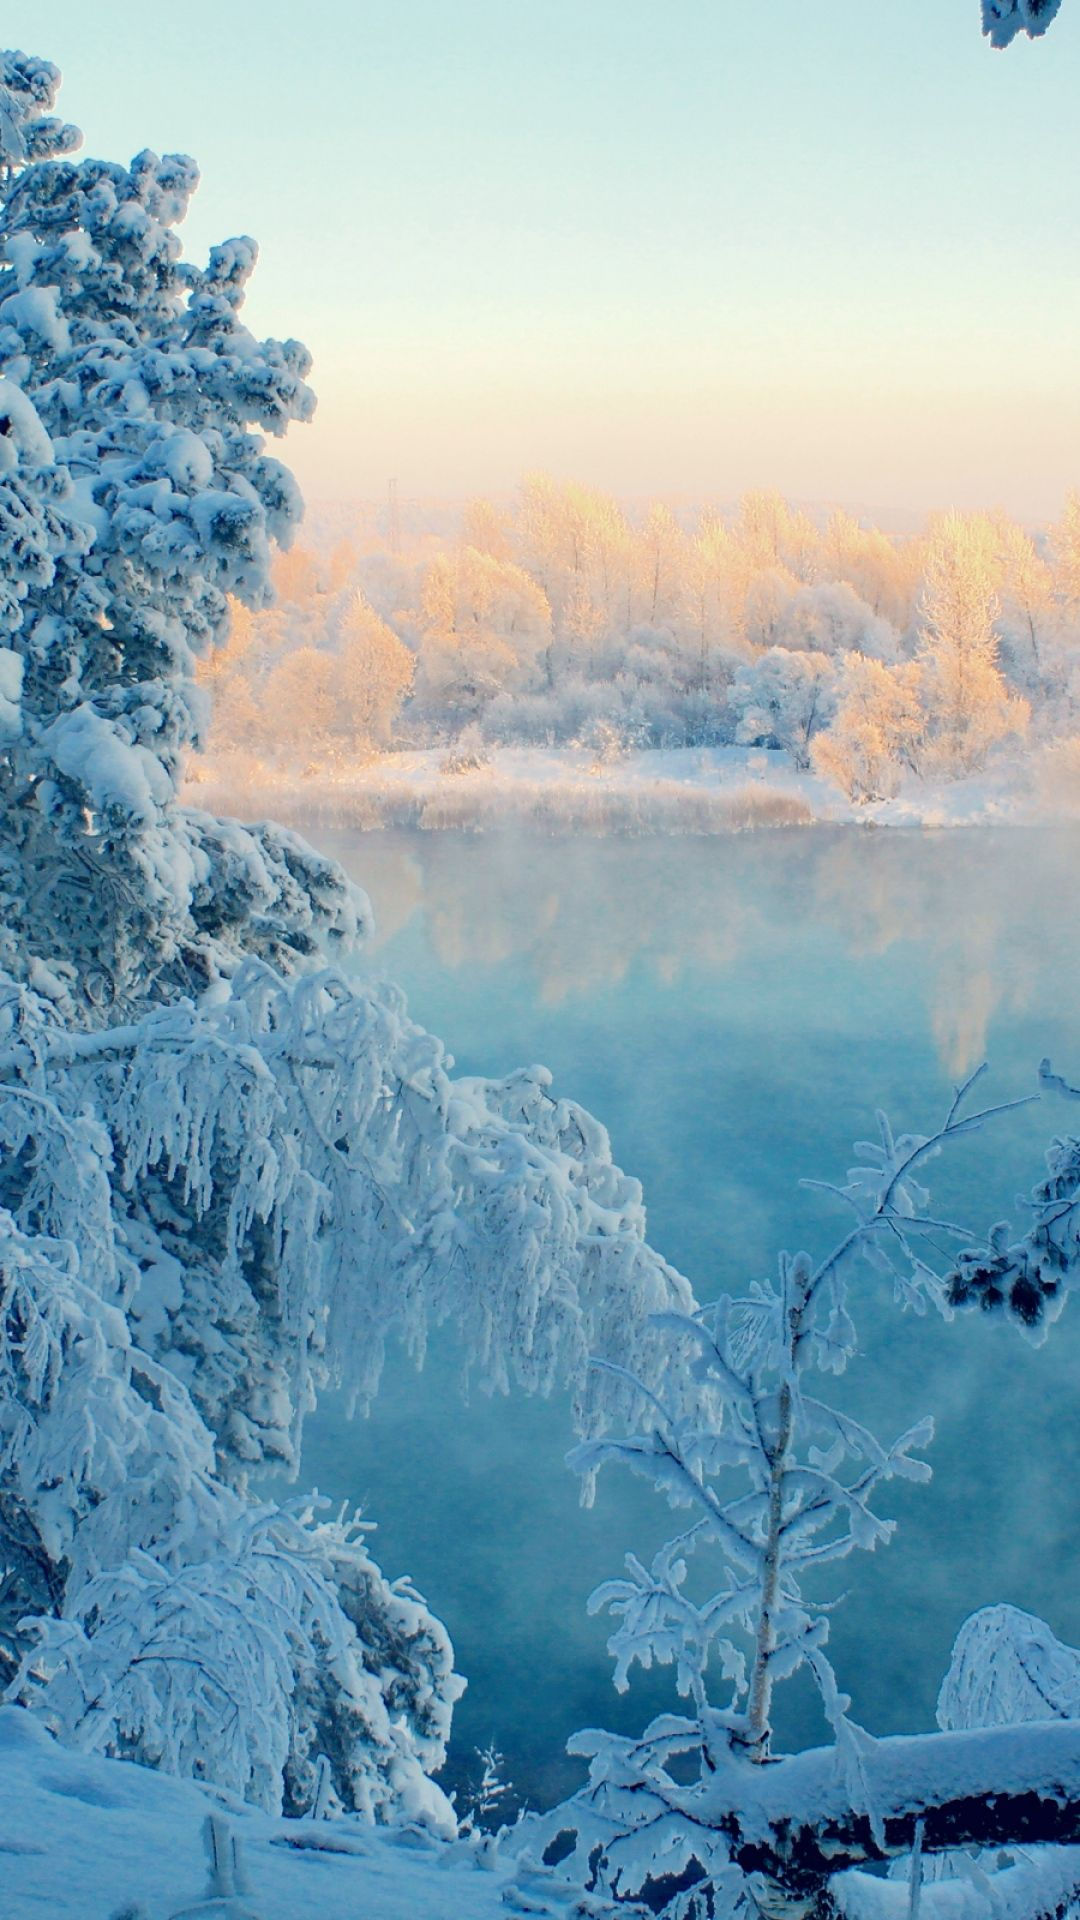 1080x1920 Wallpaper Winter Snow Trees Frost Branch Severity December Winter Landscape Nature Nature Pictures